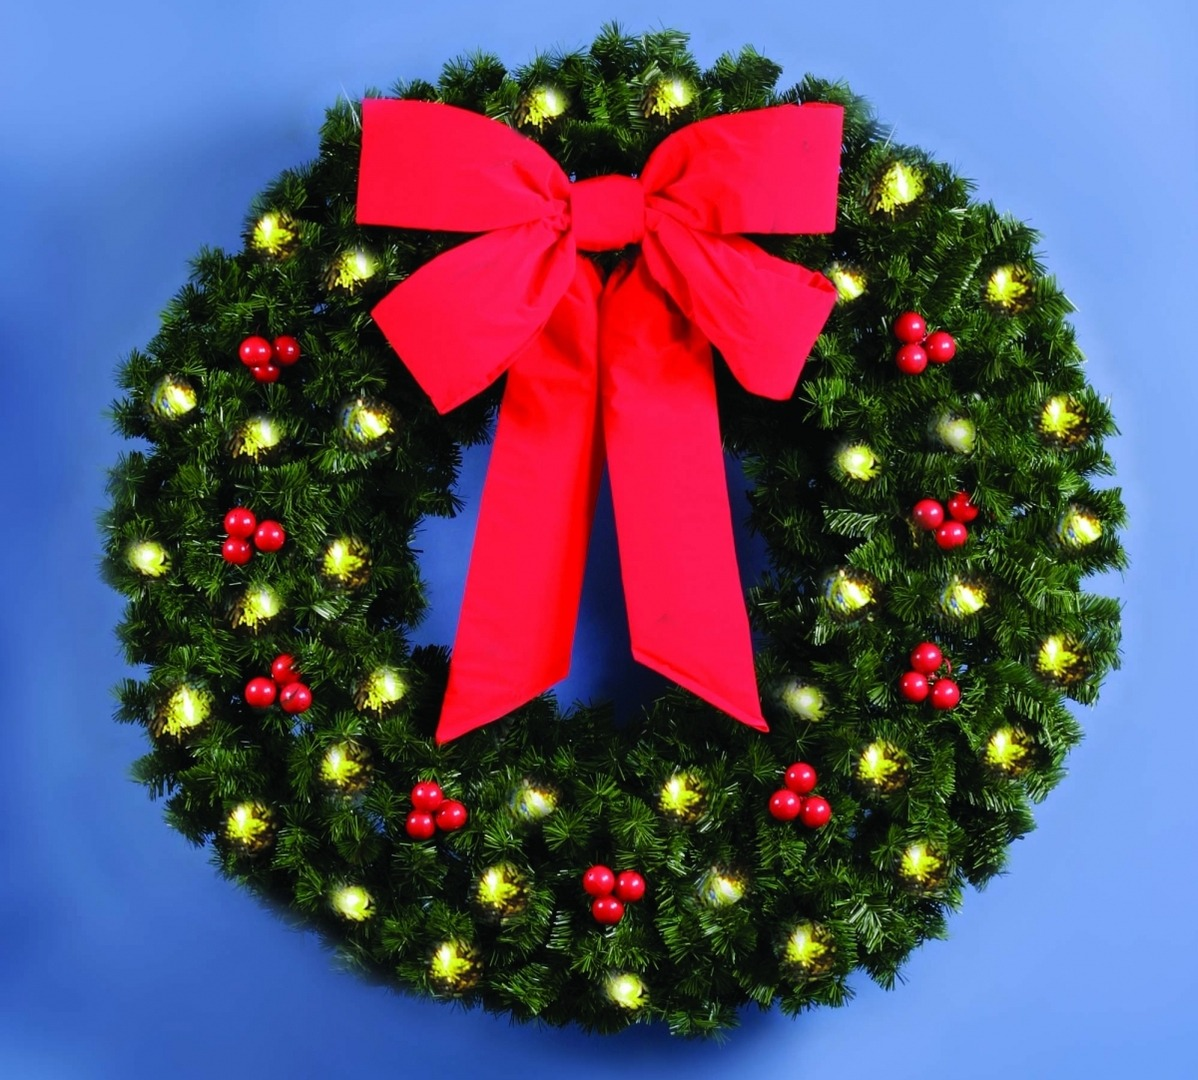 Skyline building front commercial christmas decorations for Led wreath outdoor